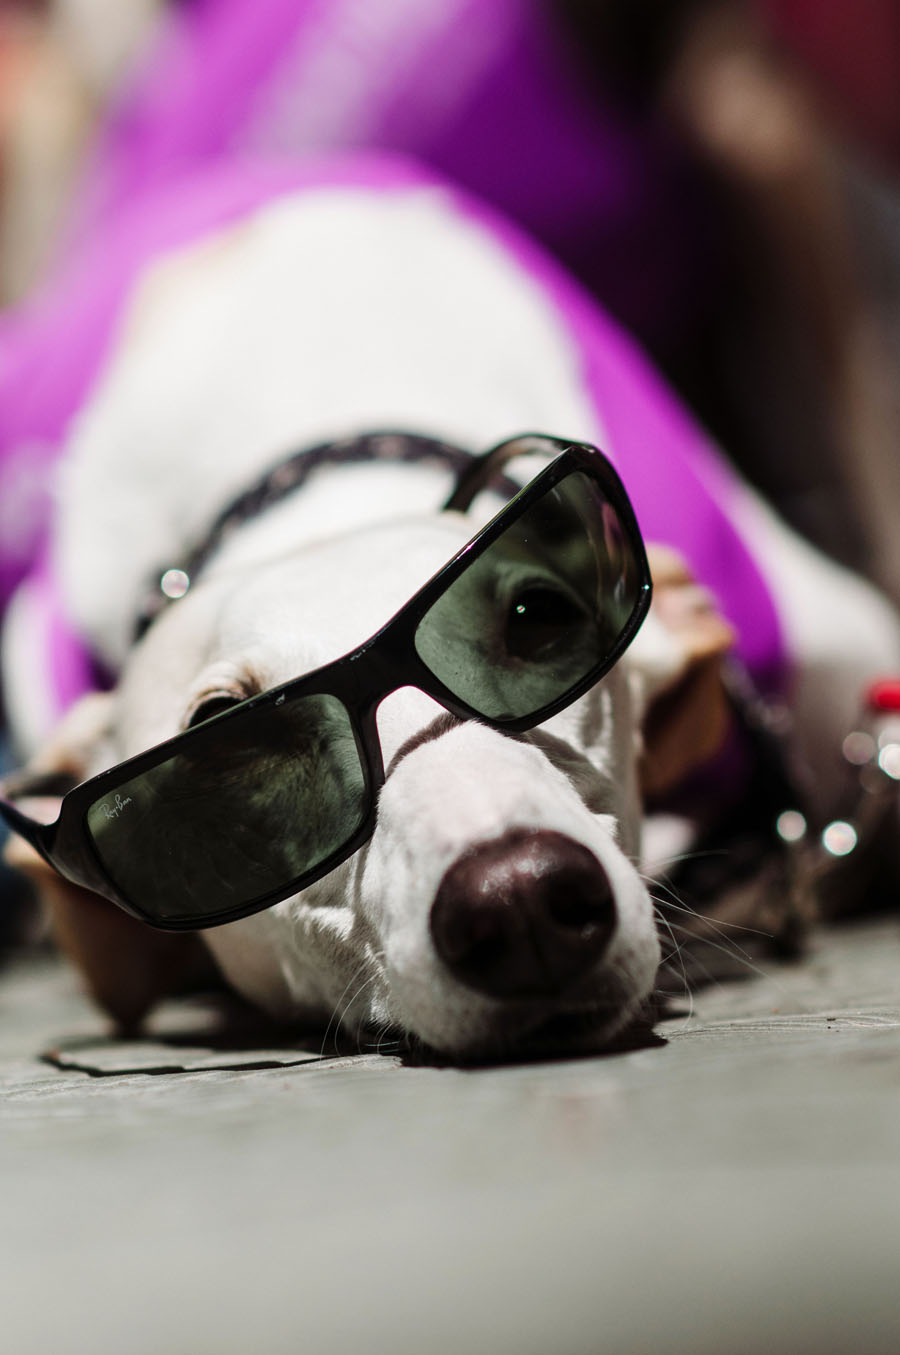 Galgo dog with sunglasses at SOS Golgos event in Barcelona